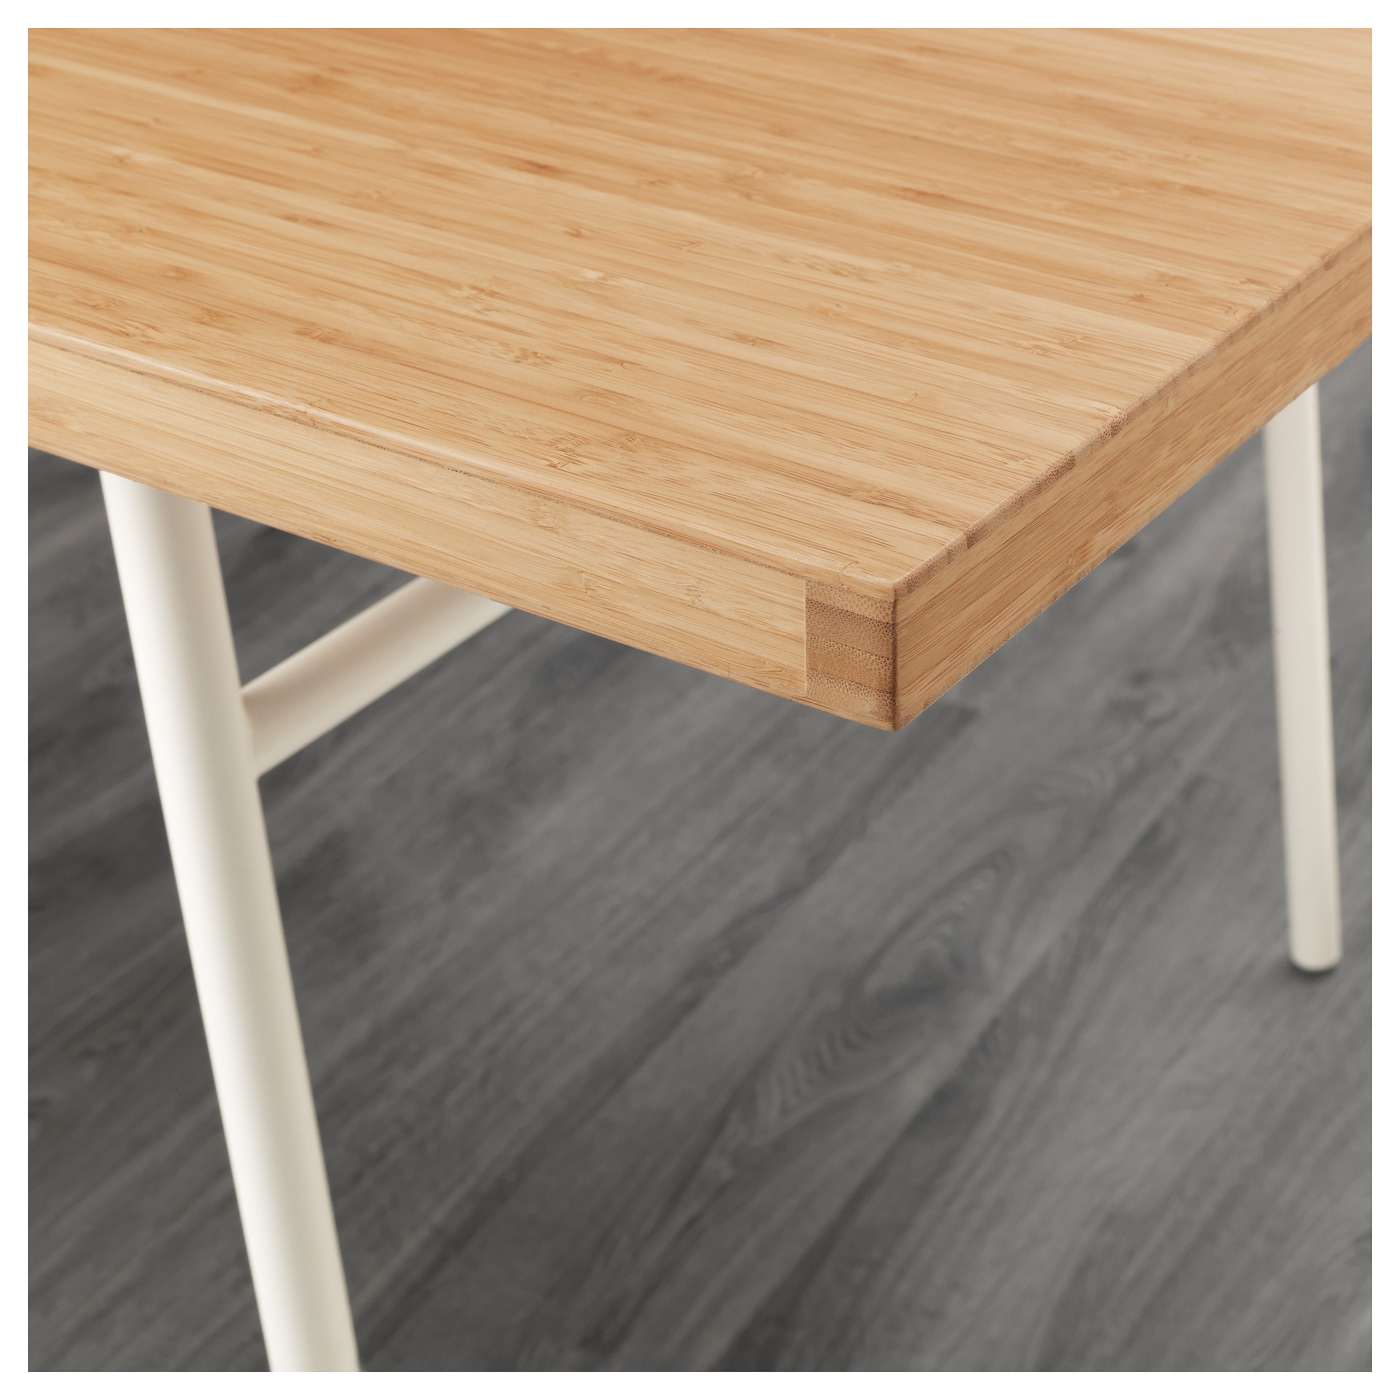 IKEA ANVÄNDBAR table Table top made of the very strong material bamboo. bb3bdd0a539b2